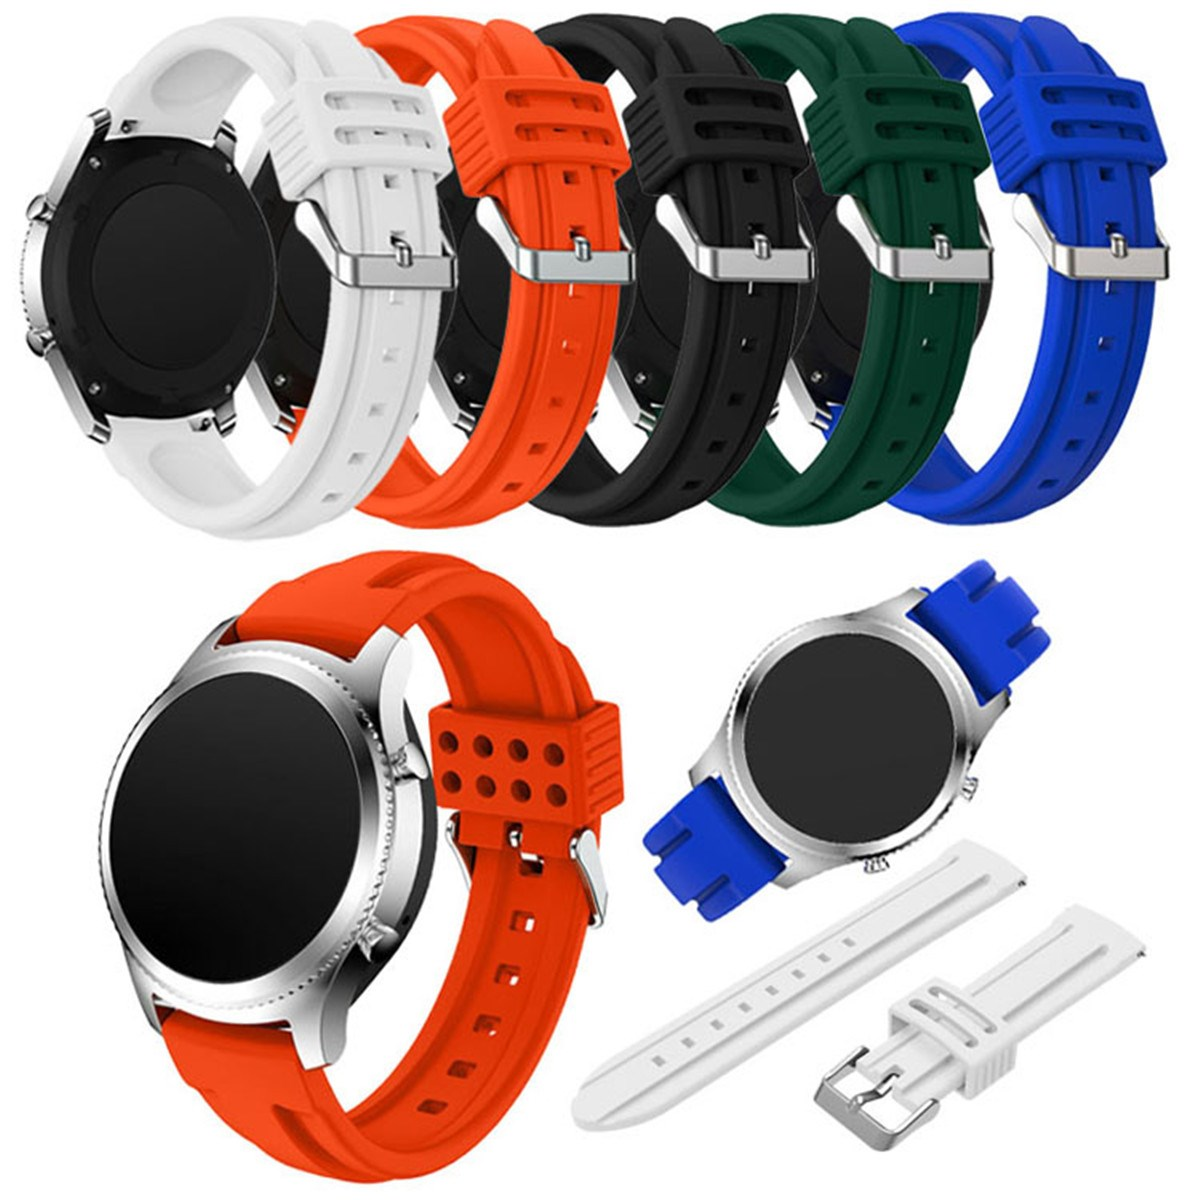 22MM Watchband for/Samsung Gear S3 Soft Silicone Replacement Bracelet Rubber Bands For/Samsung Gear S3 Smart Sport Watch